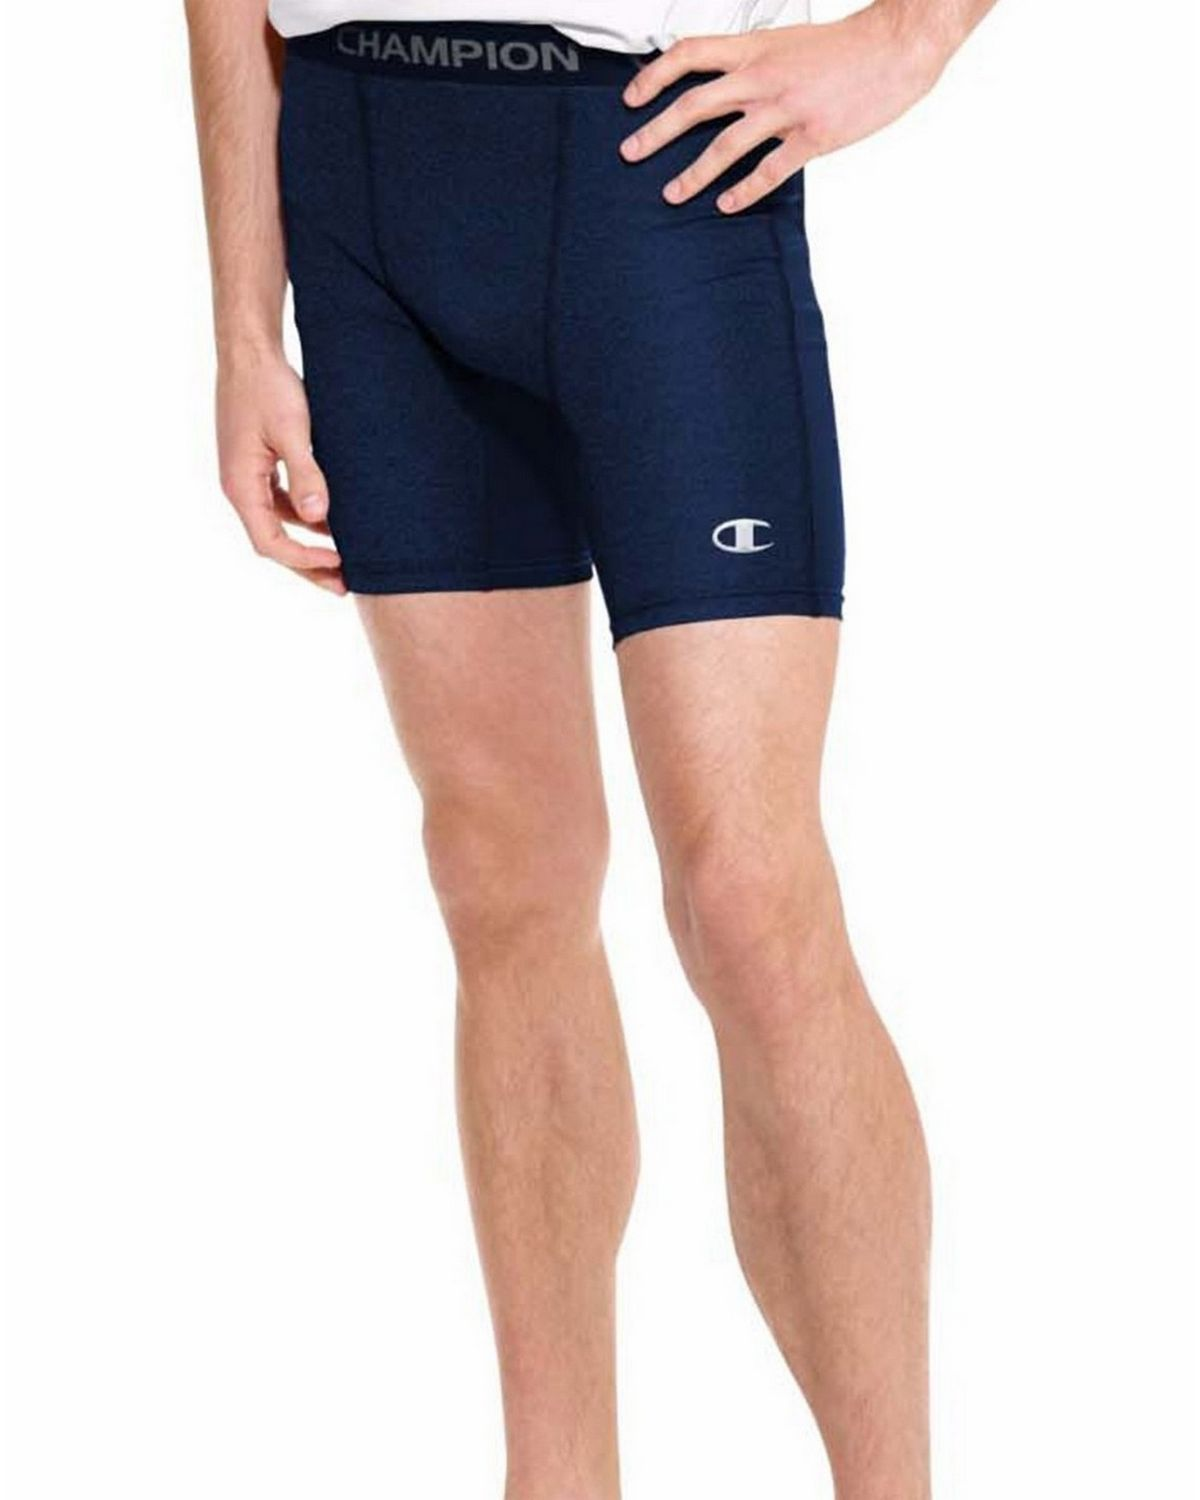 Champion 87294 PowerTrain PowerFlex Solid Compression Shorts - Navy - XL 87294